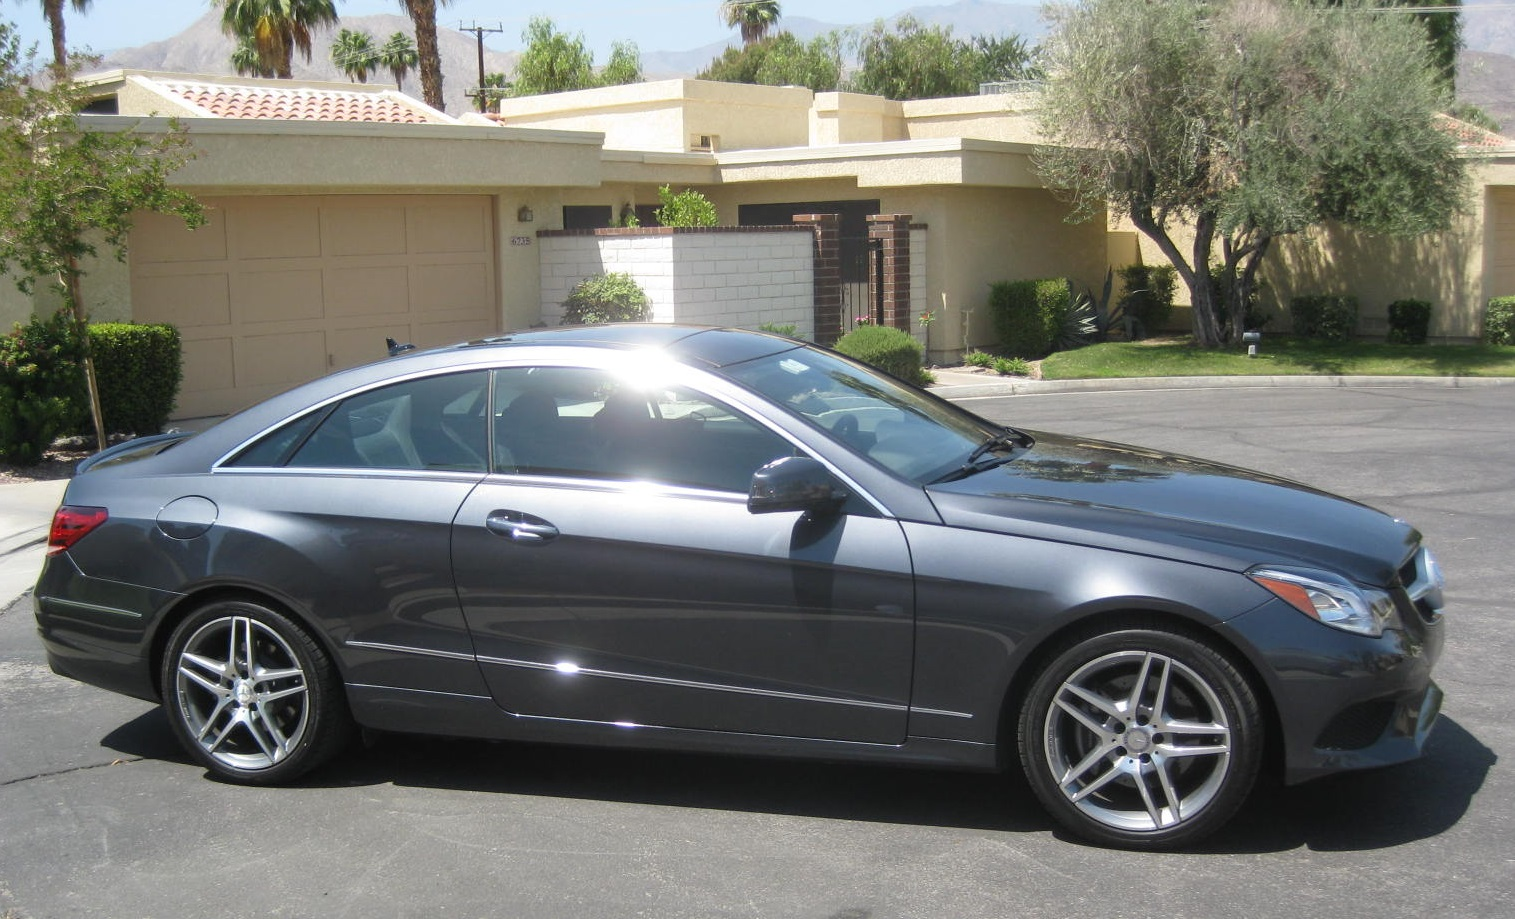 Personal luxury pillarless style the 2014 mercedes benz for How much is a 2014 mercedes benz s550